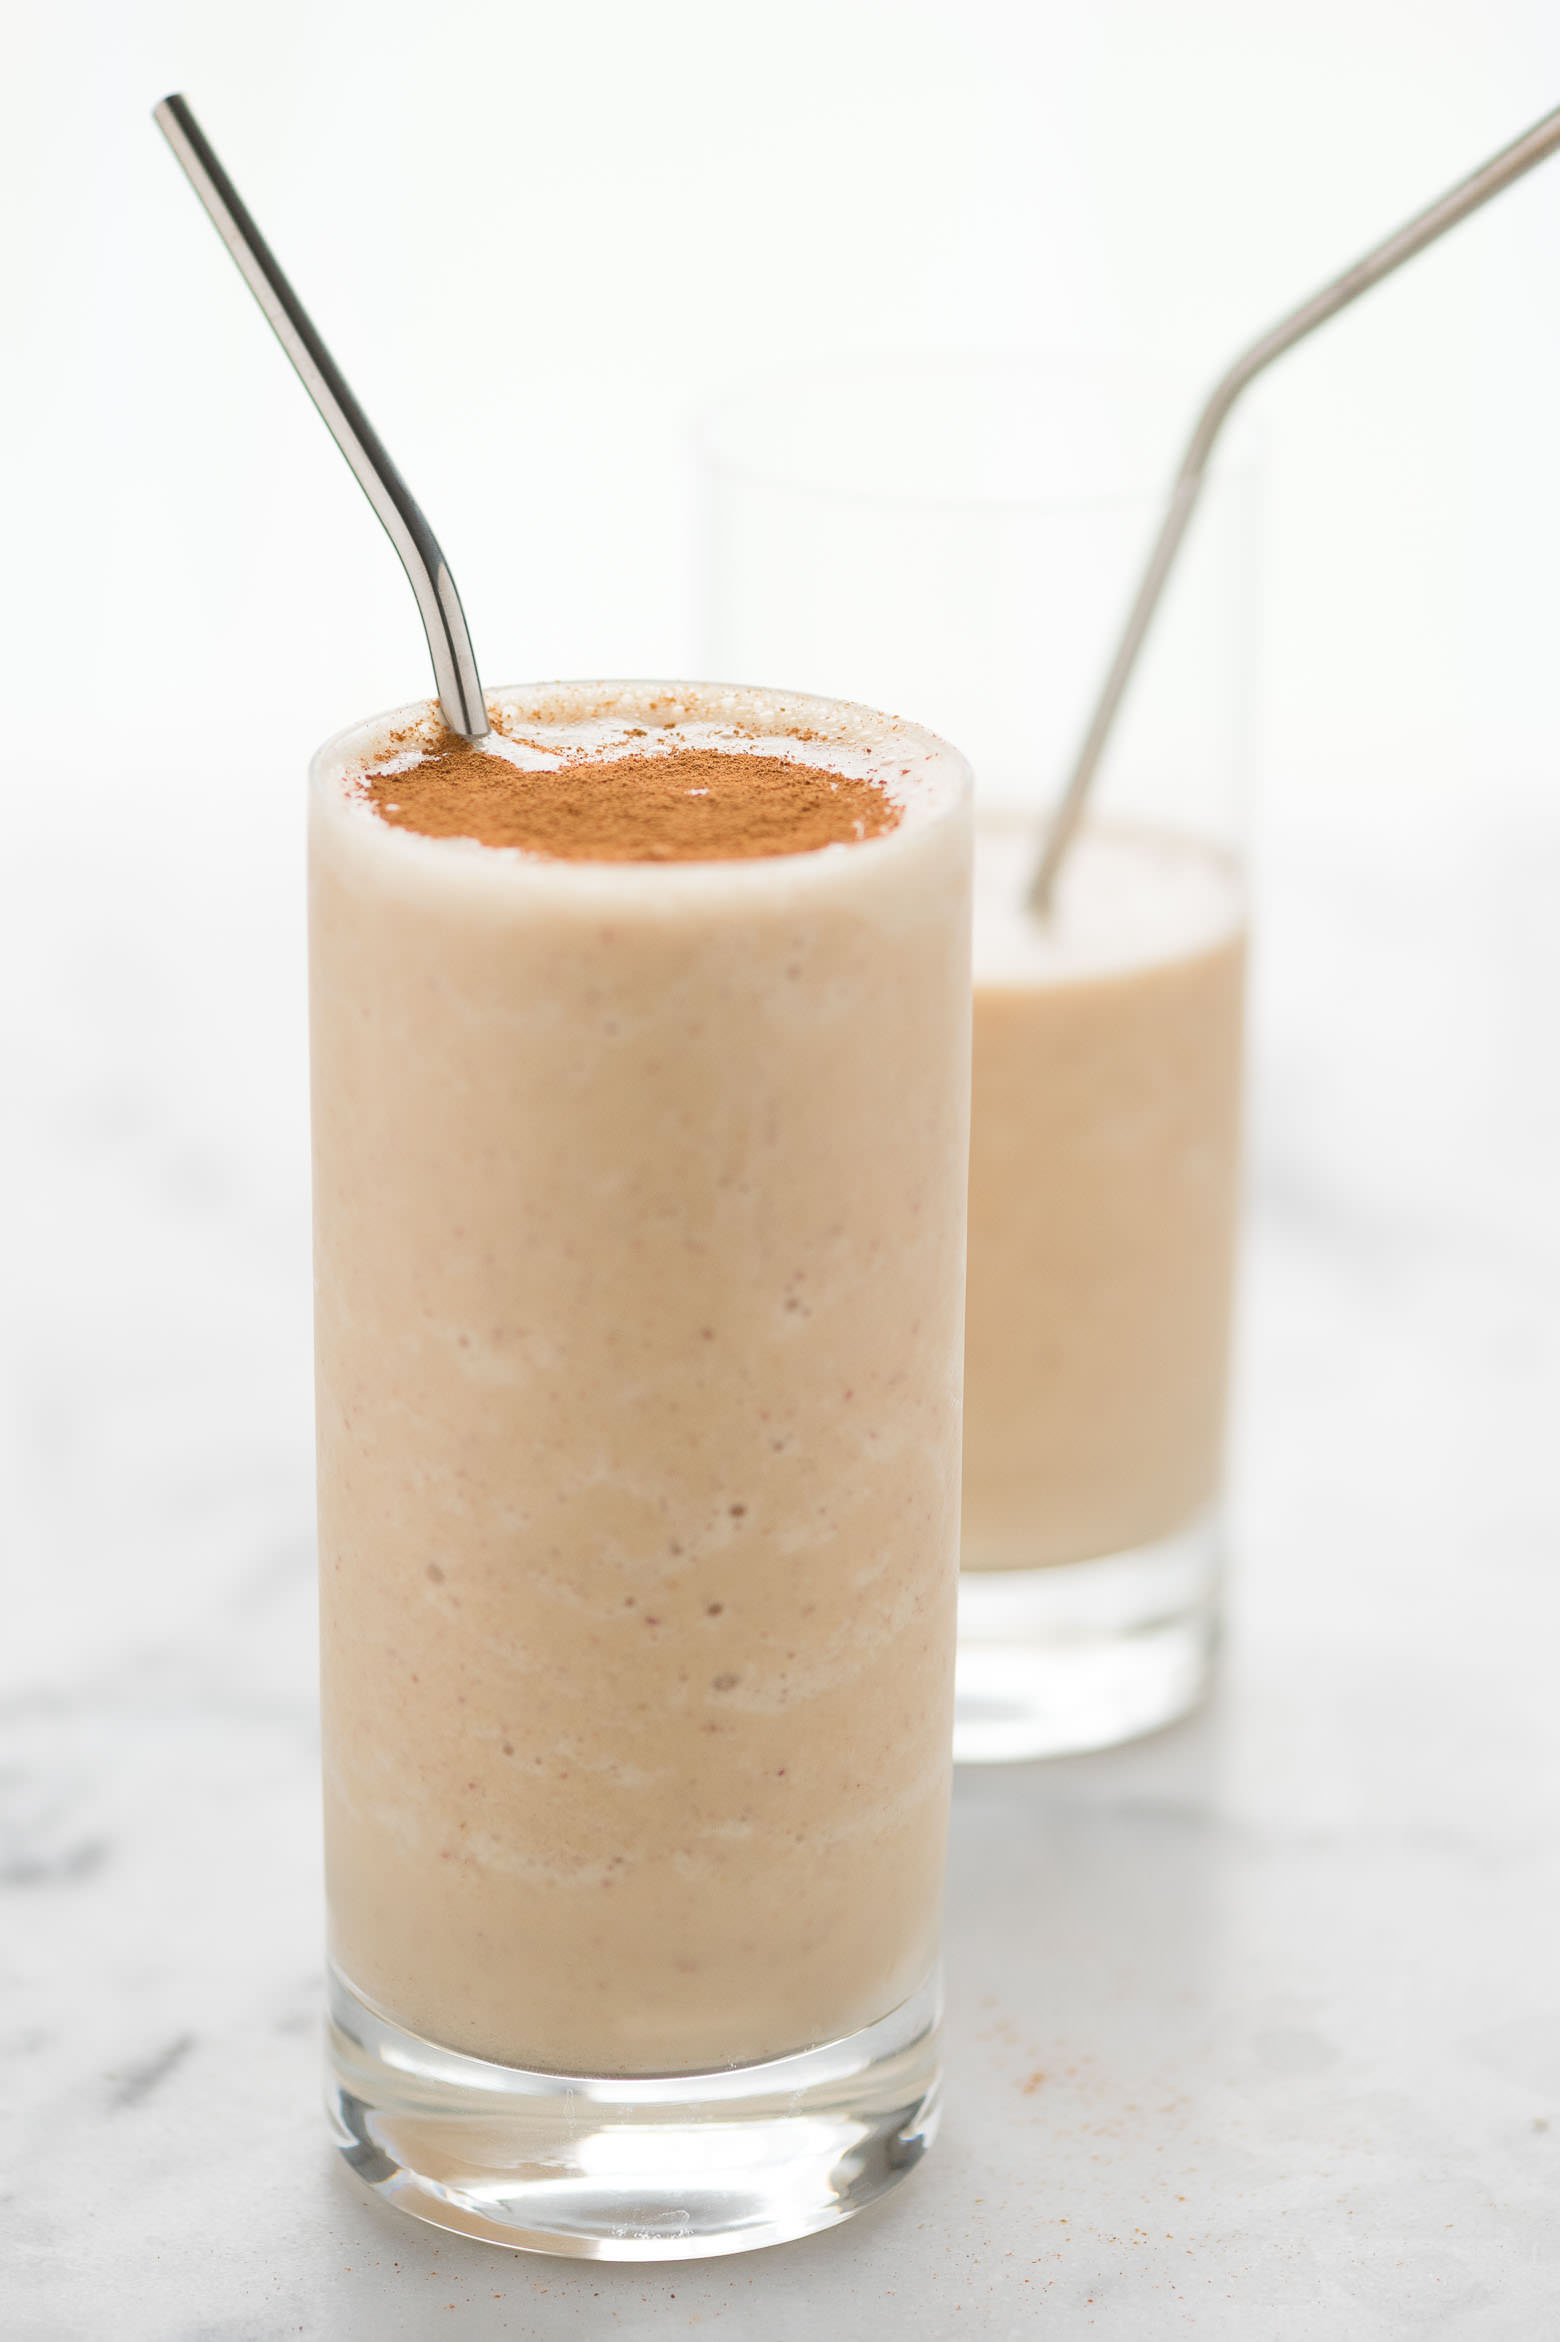 Apple Oatmeal Smoothie Recipes is easy, healthy filled with Peanut Butter. {Breakfast, Vegan, instant, cinnamon, Weightloss, Fruit, Skinny, Protein}z